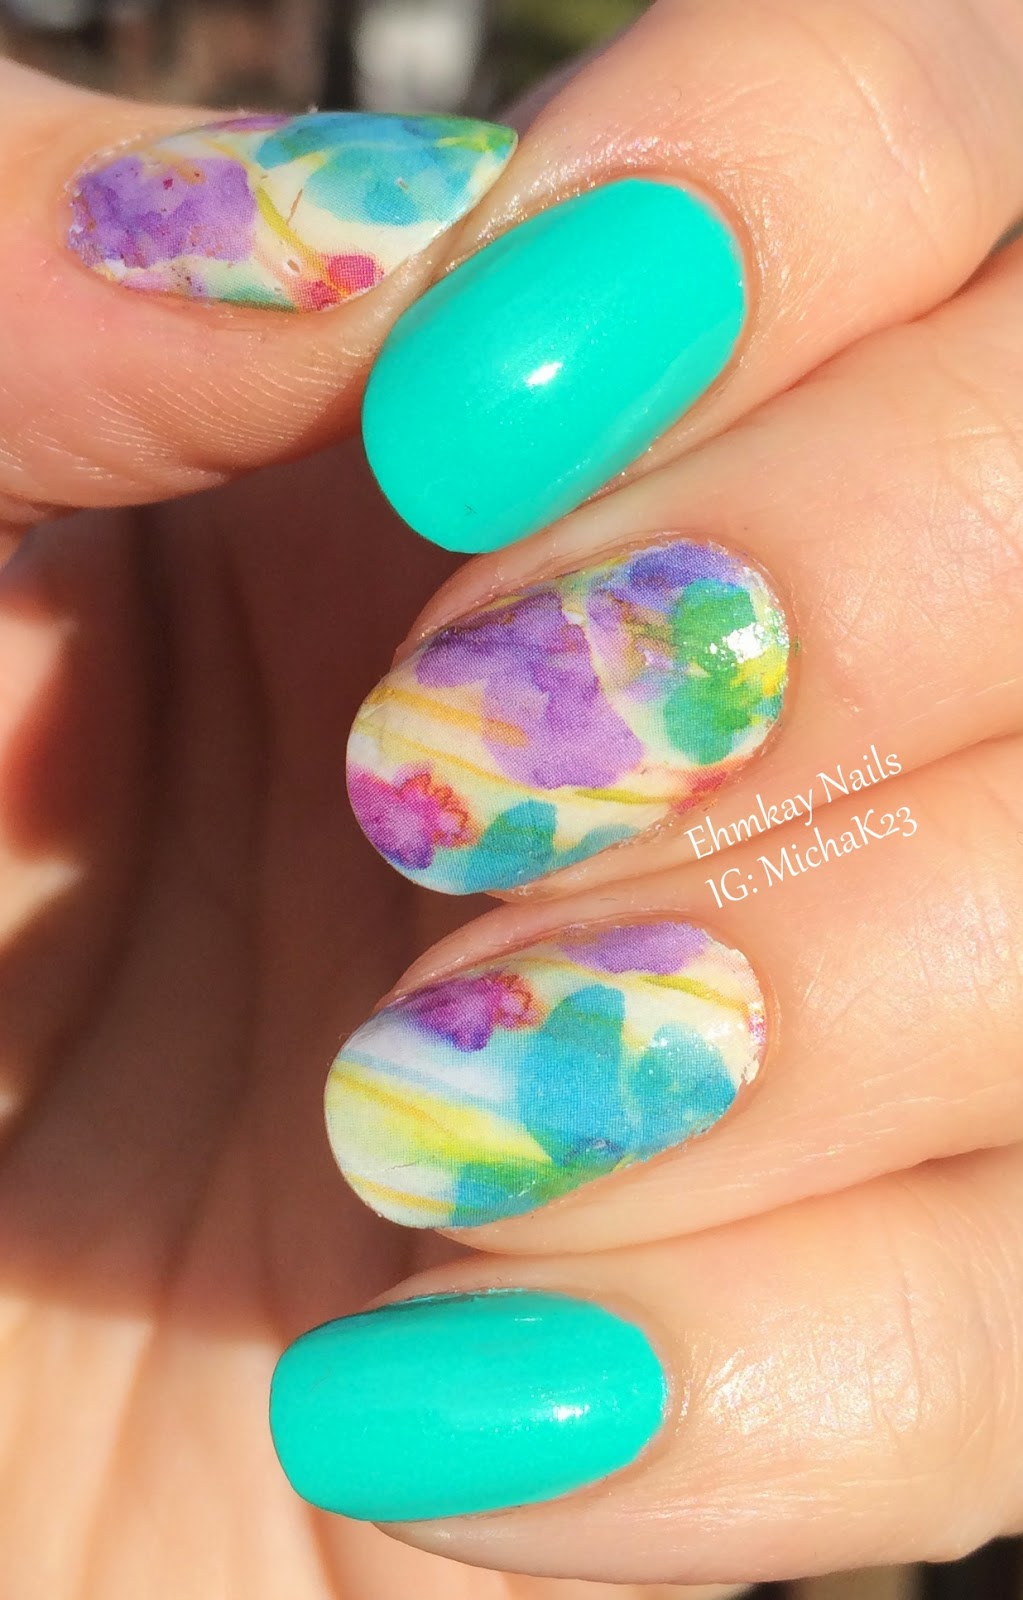 Ehmkay Nails: Born Pretty Full Nail Water Decals: Instant